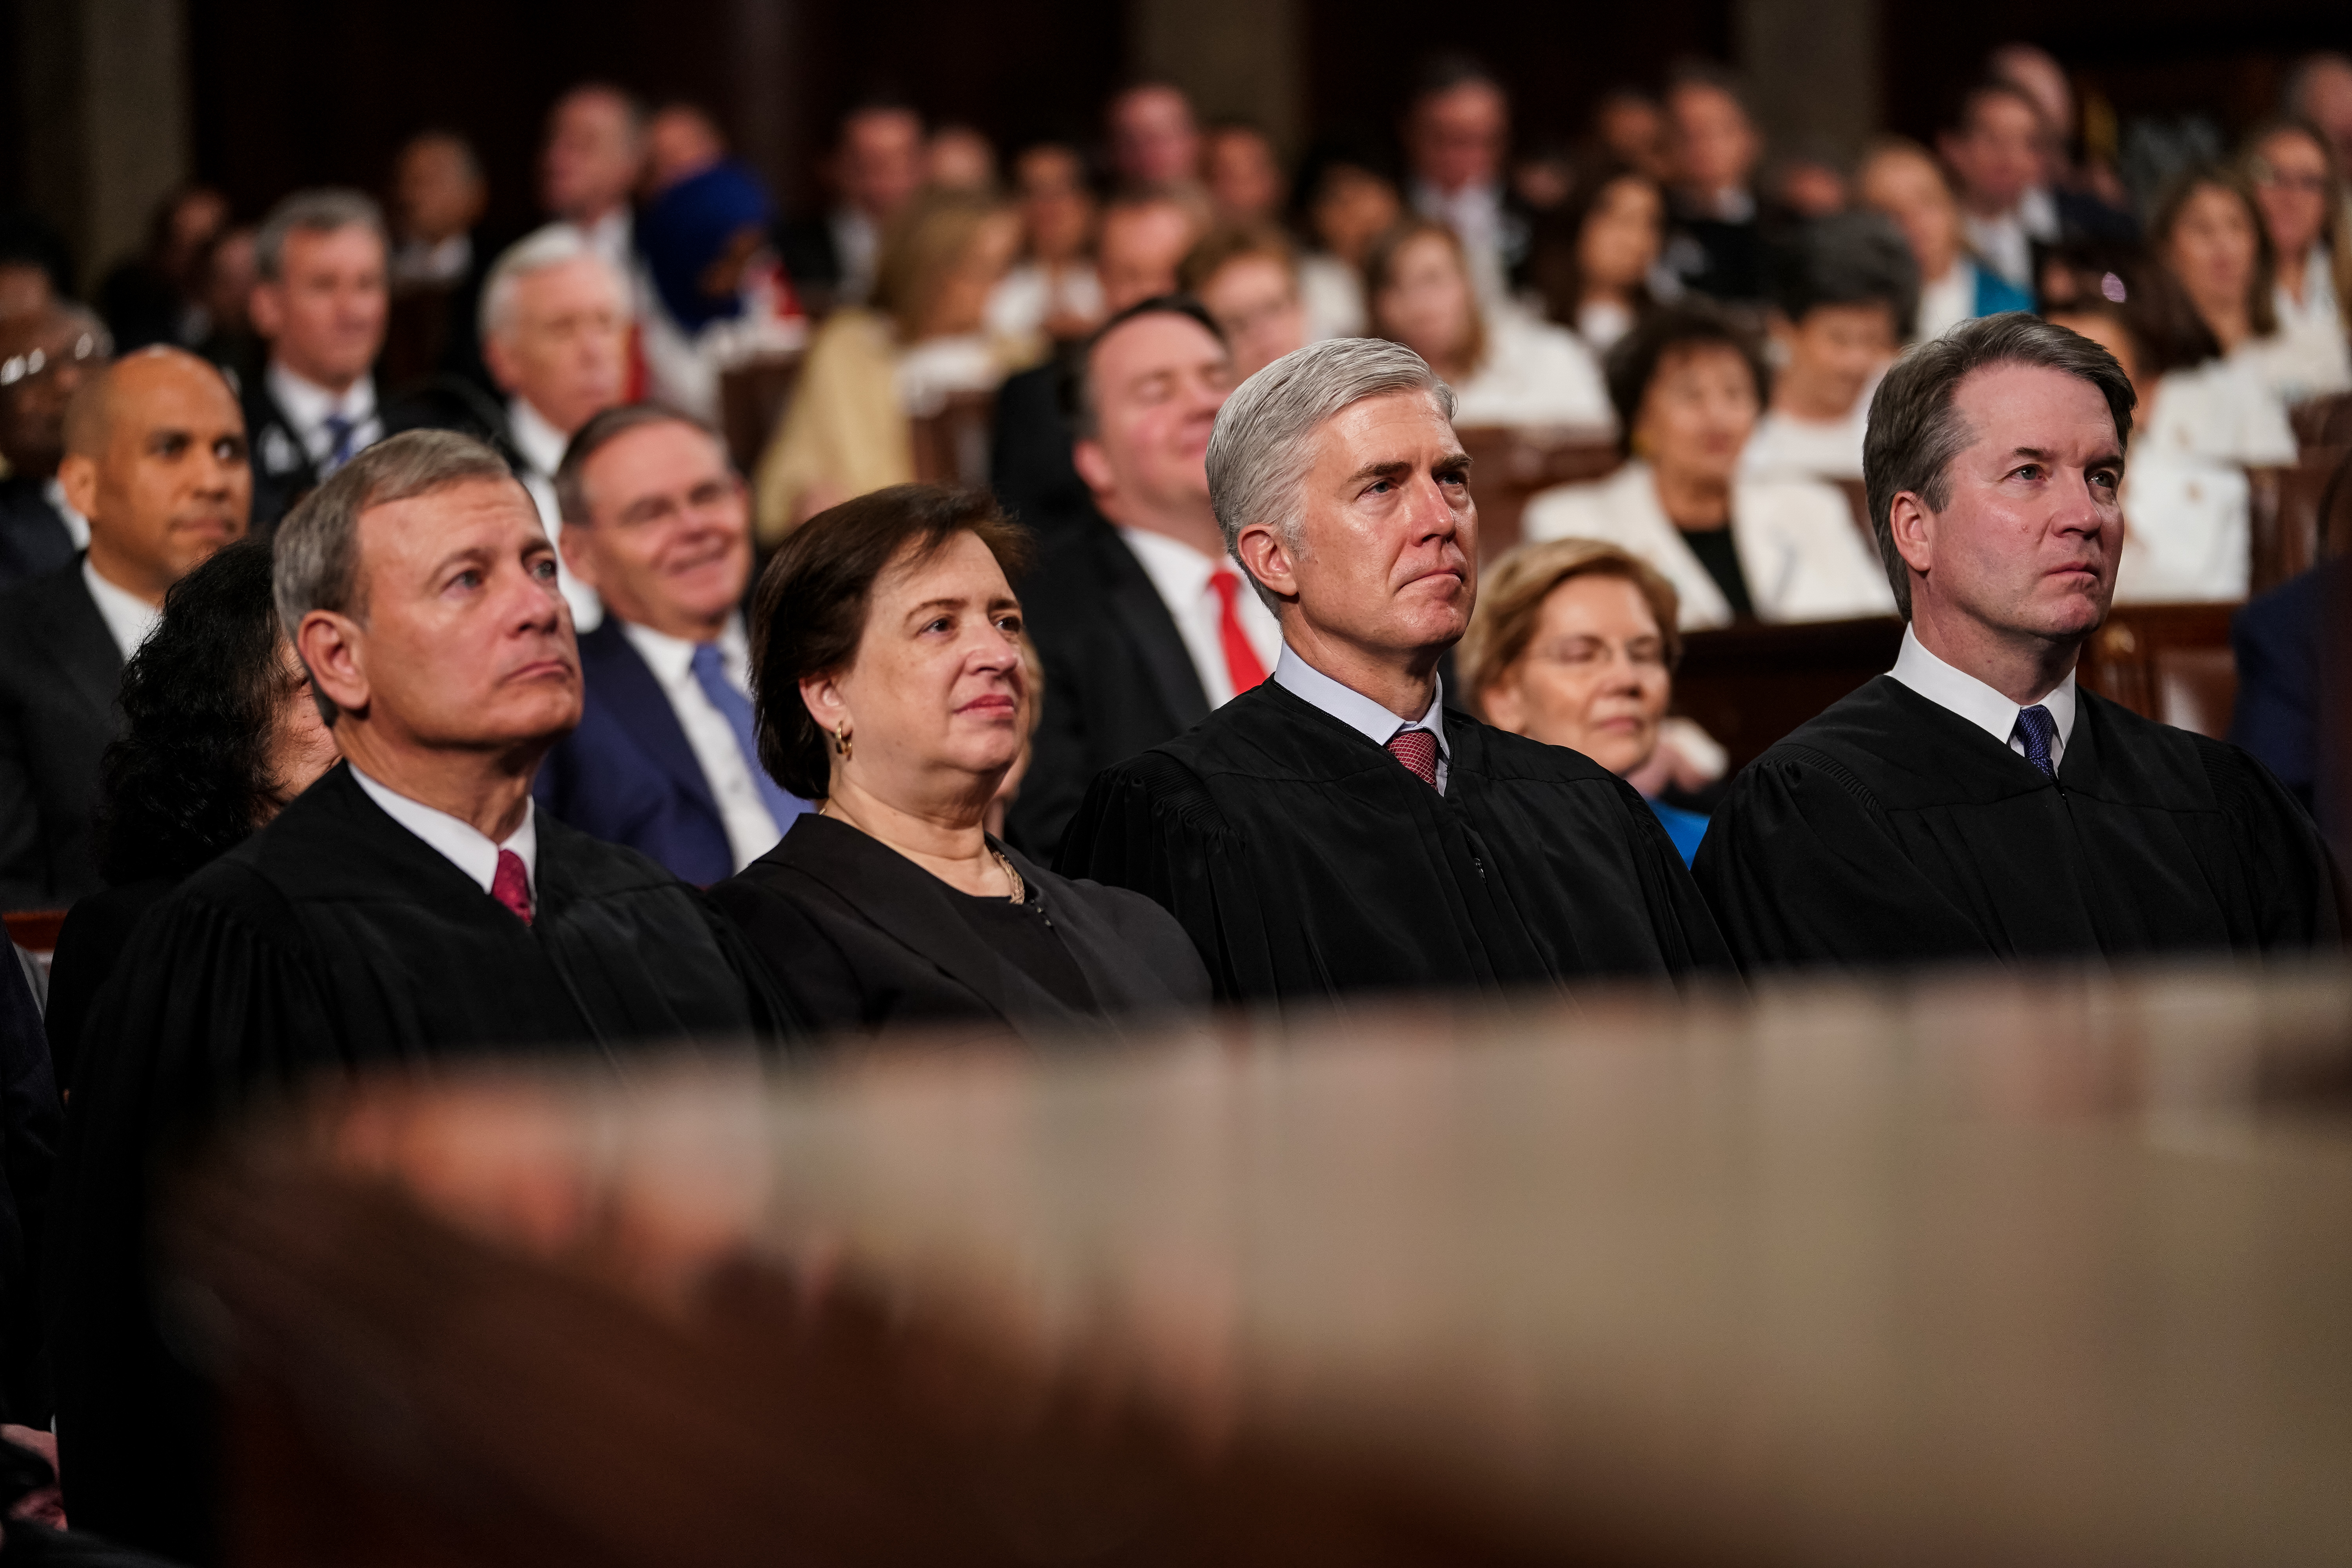 Chief Justice John Roberts and Justices Elena Kagan, Neil Gorsuch, and Brett Kavanaugh at the State of the Union address on February 5, 2019. (Doug Mills/Pool/Getty Images)